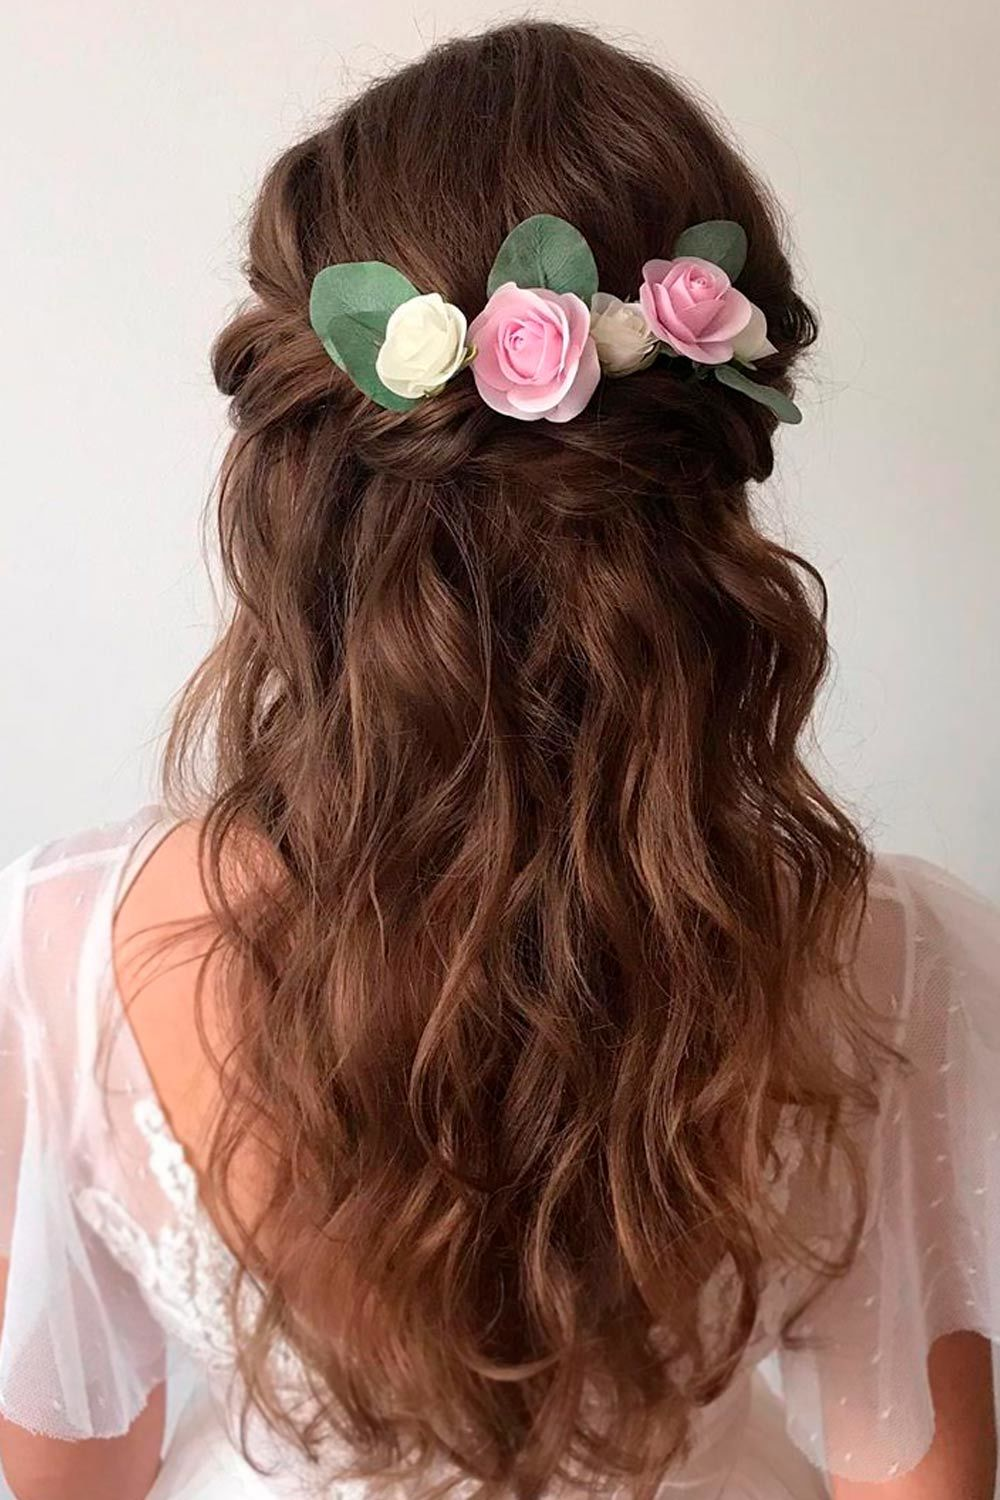 Flower Accessorized Half Up Hairstyles For Long Hair